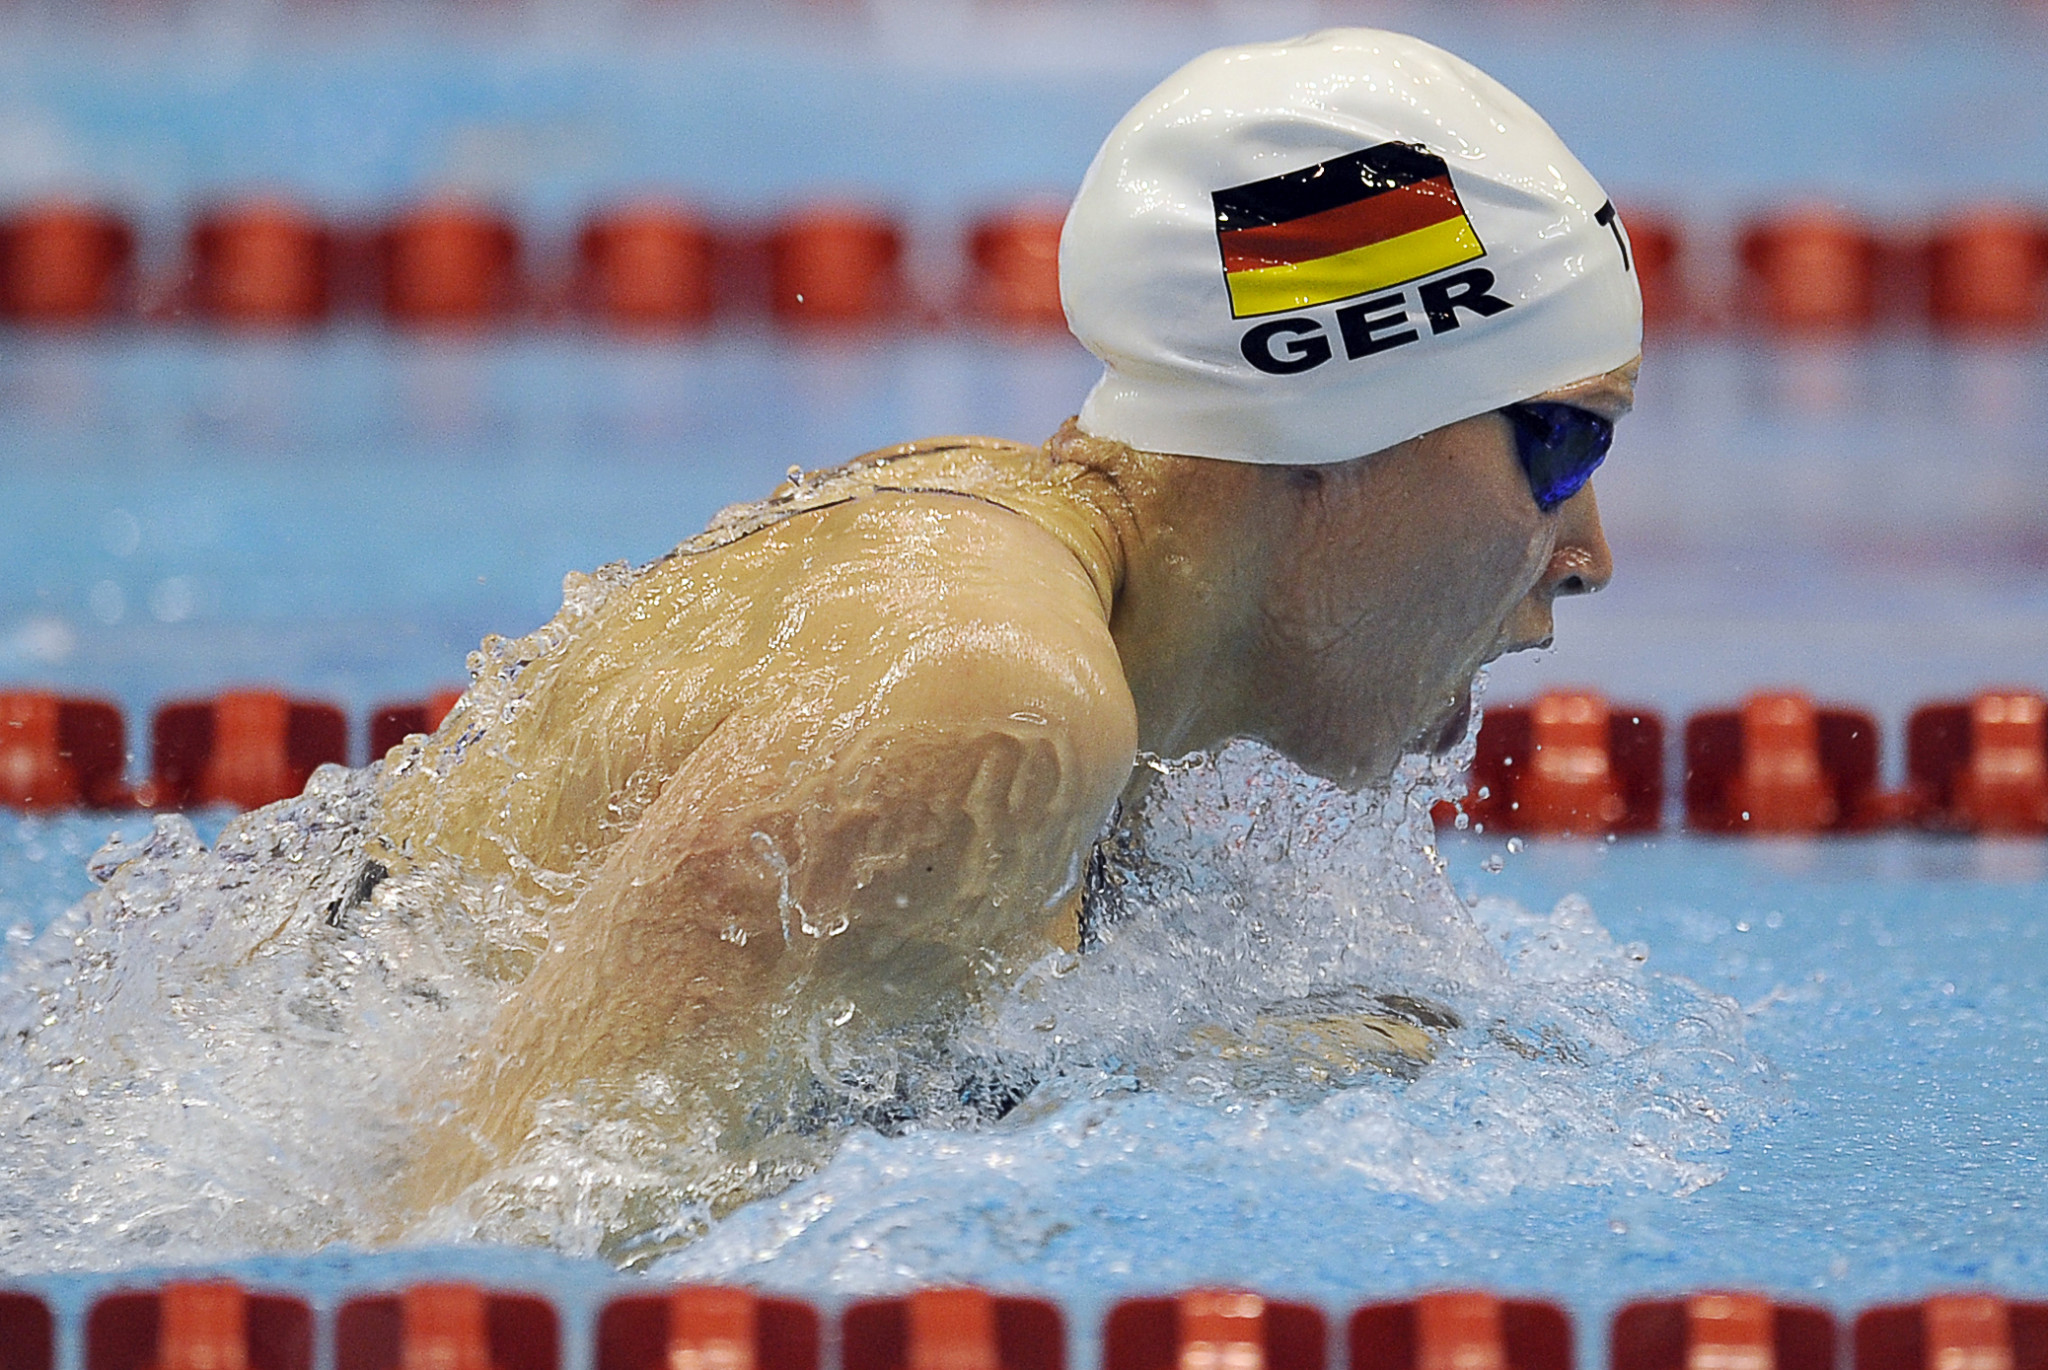 Dorothea Brandt, head of swimming at adh, competed at Athens 2004 and Rio 2016 ©Getty Images